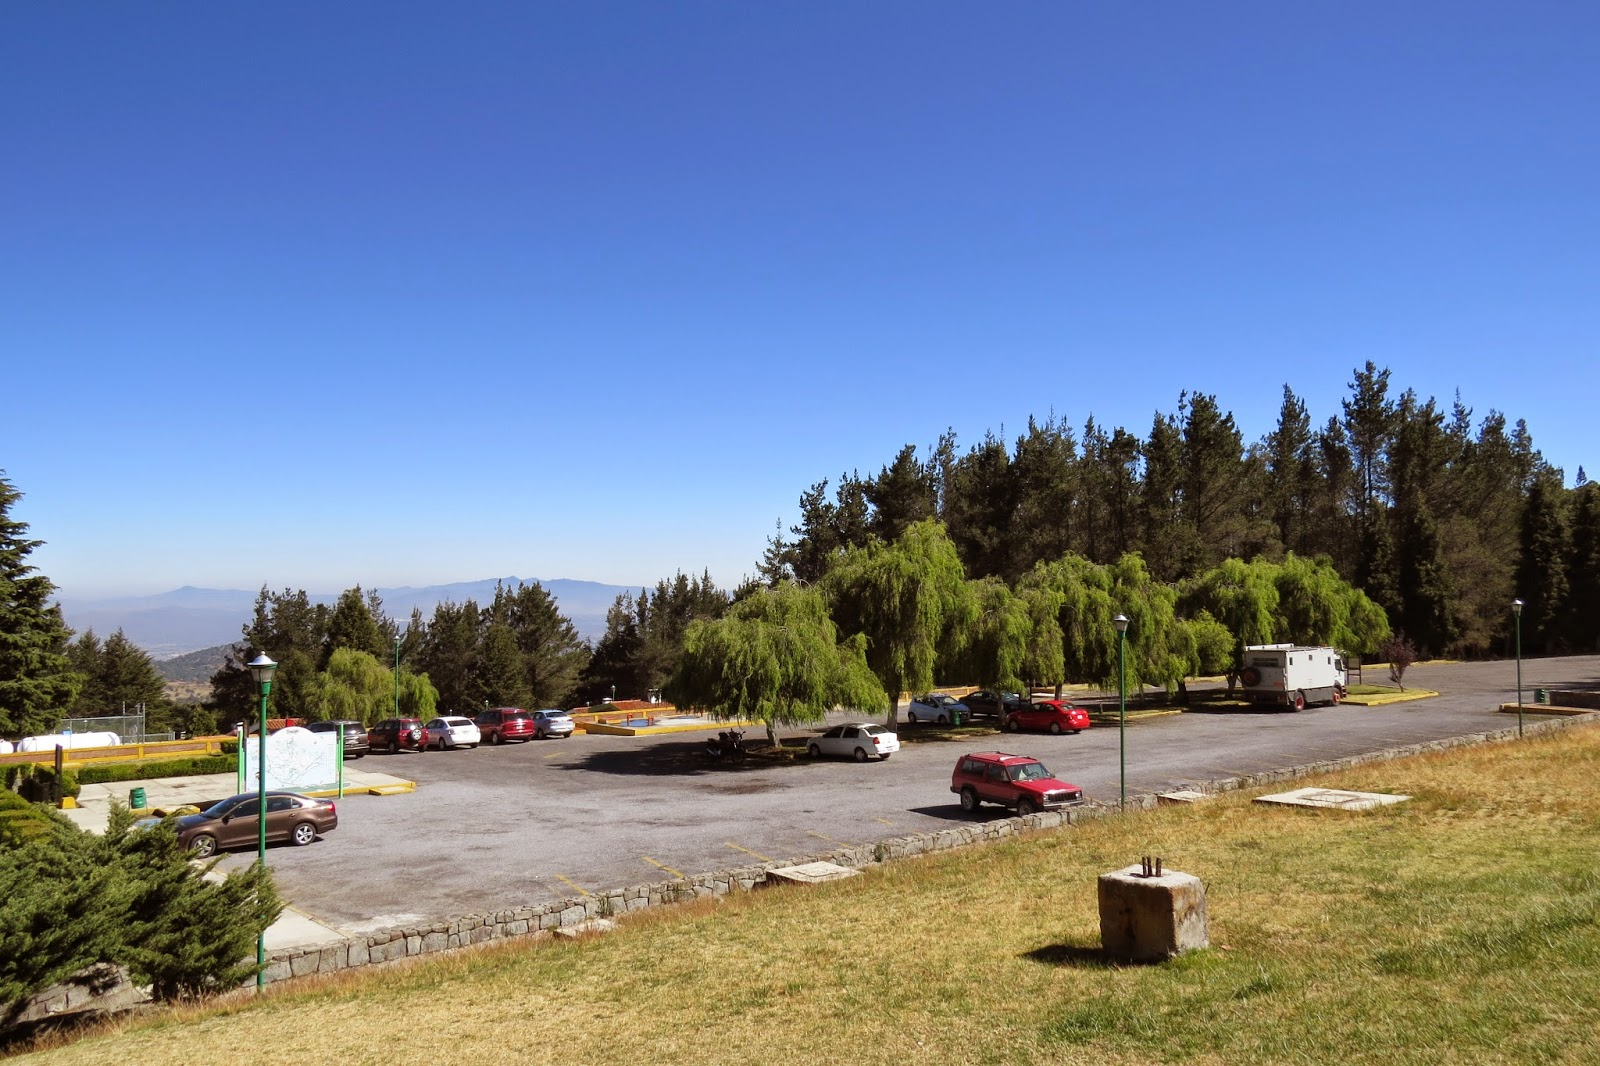 Camping at La Malinche Volcano in Jim the overland motorhome